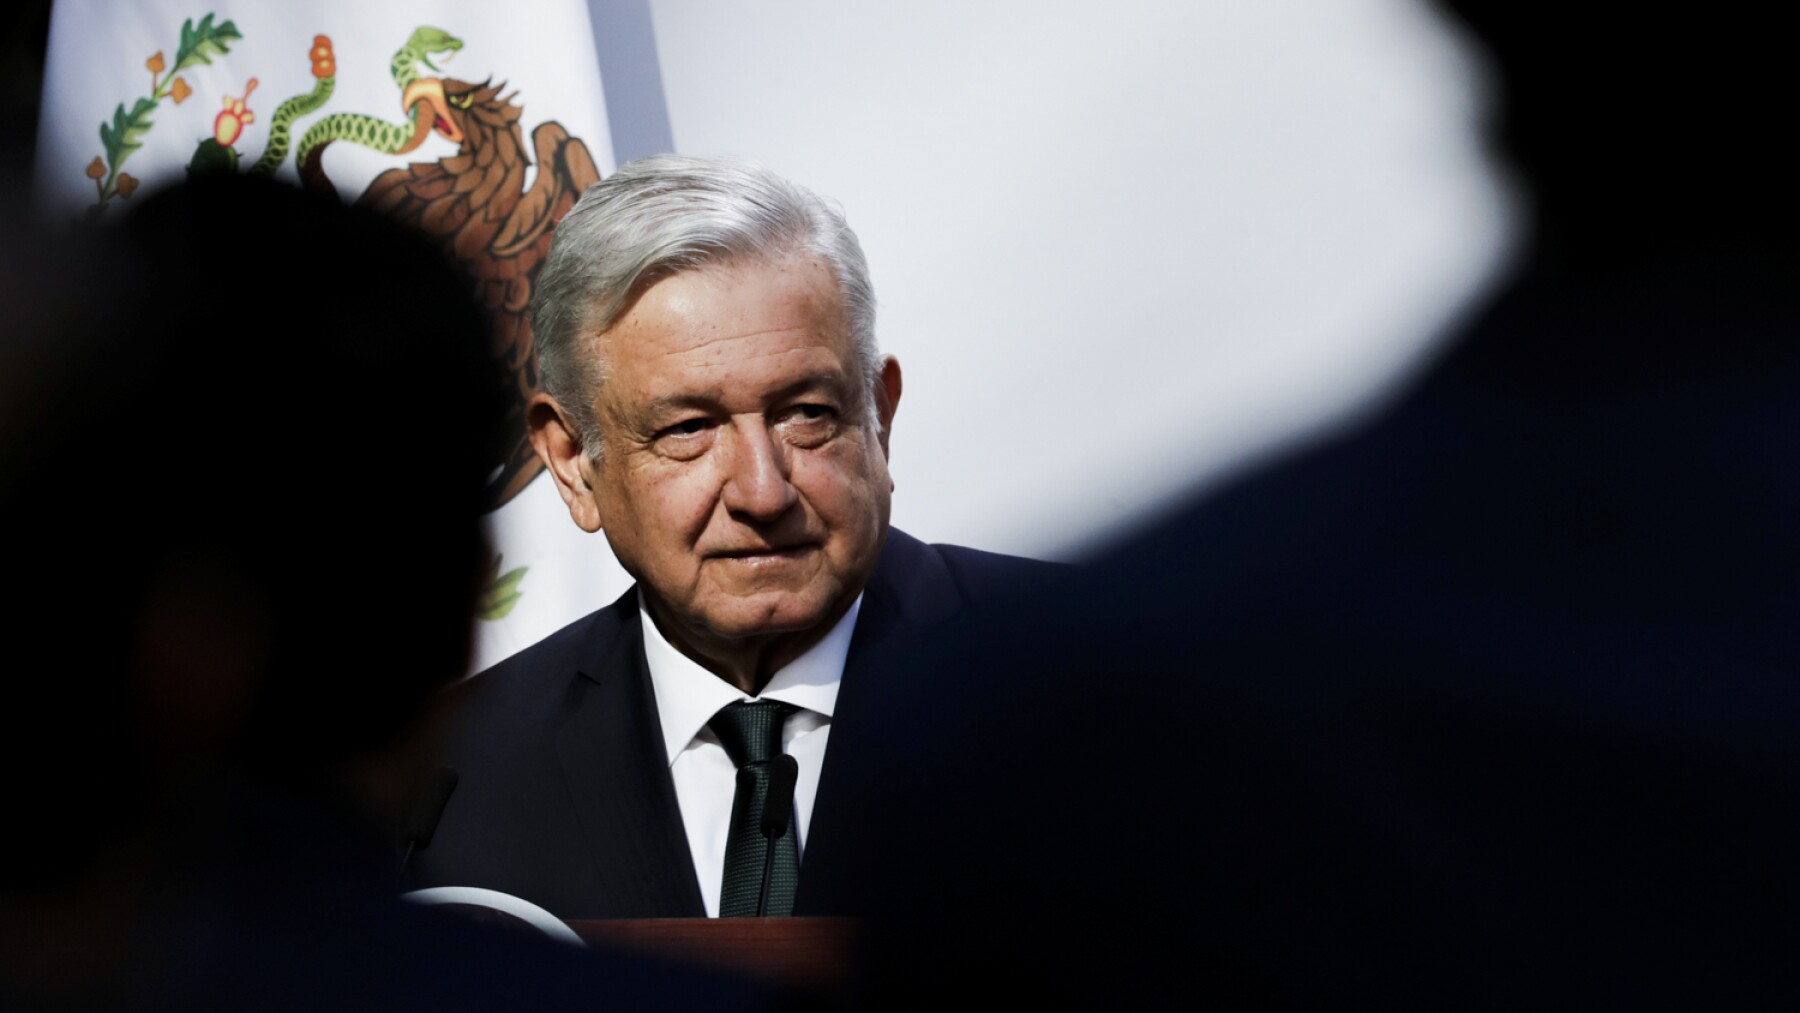 Mexico's President Andres Manuel Lopez Obrador delivers his second state of the union address at National Palace in Mexico City